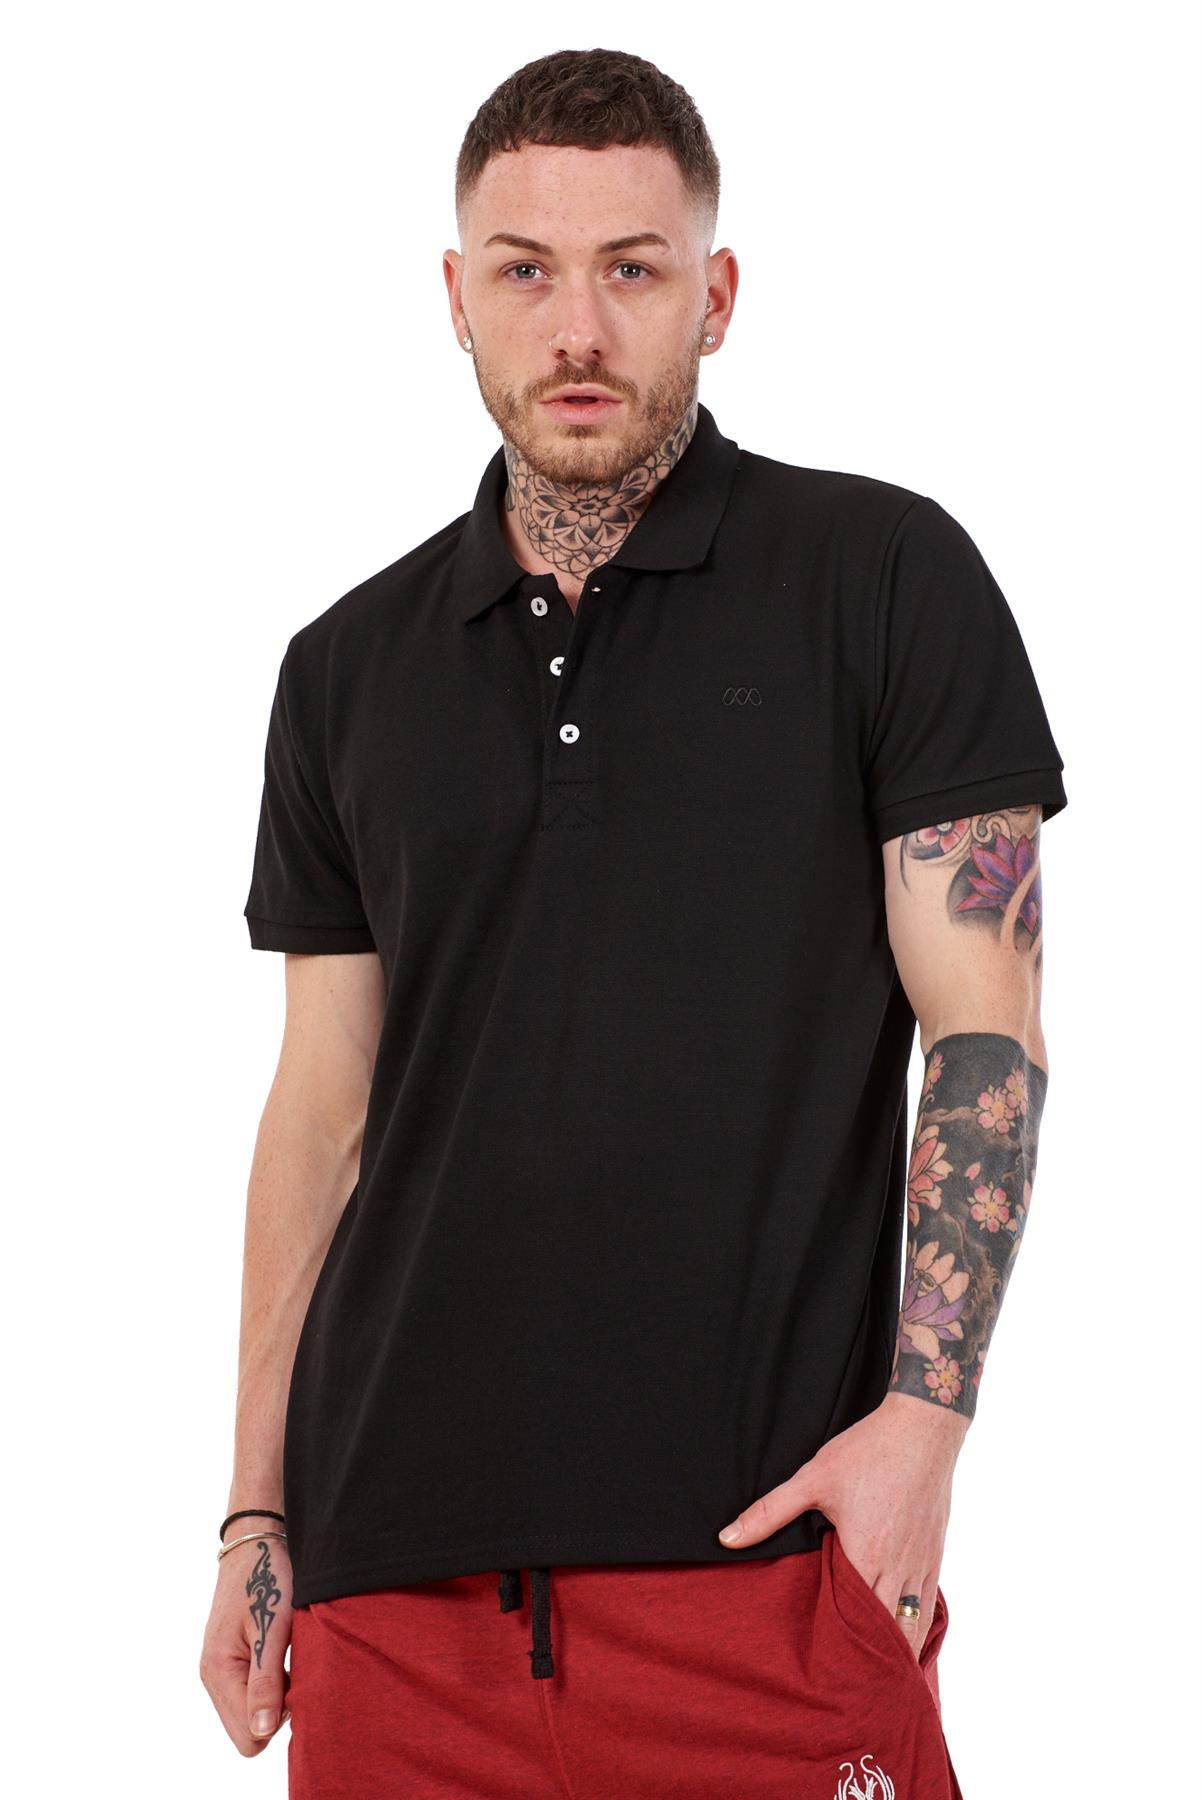 Mens-Plain-Solid-Polo-Cotton-T-Shirts-Regular-fit-Casual-Formal-Shirt-Top-M-XXL thumbnail 5